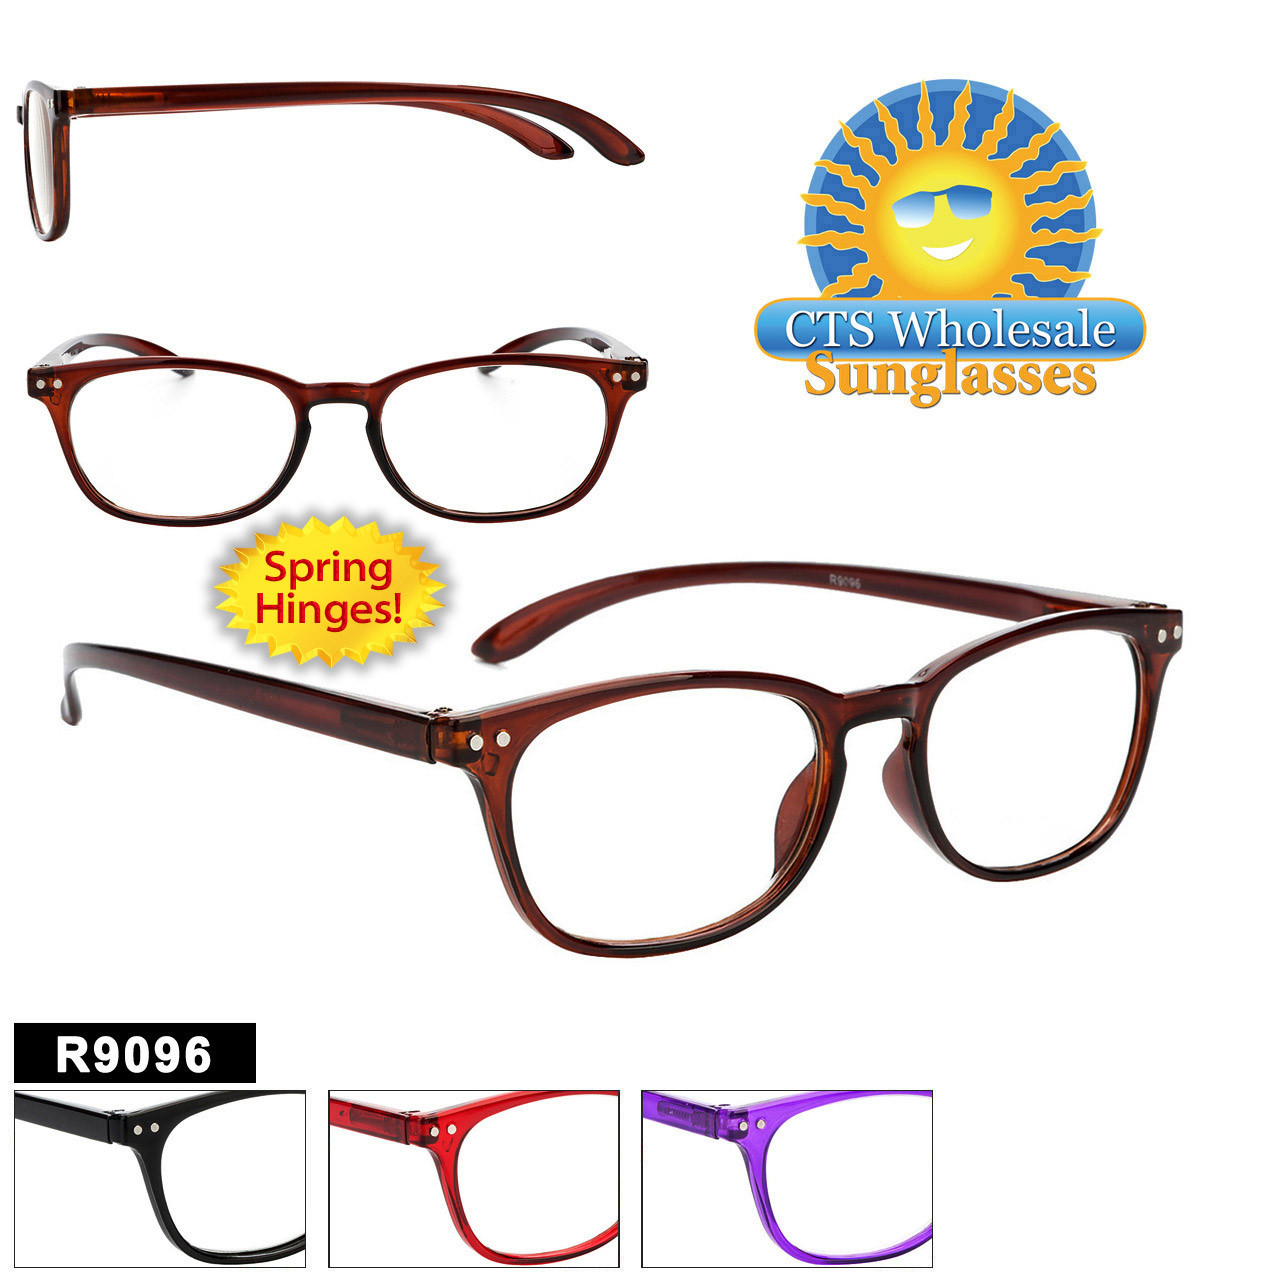 Plastic Reading Glasses - R9096 Spring Hinge!